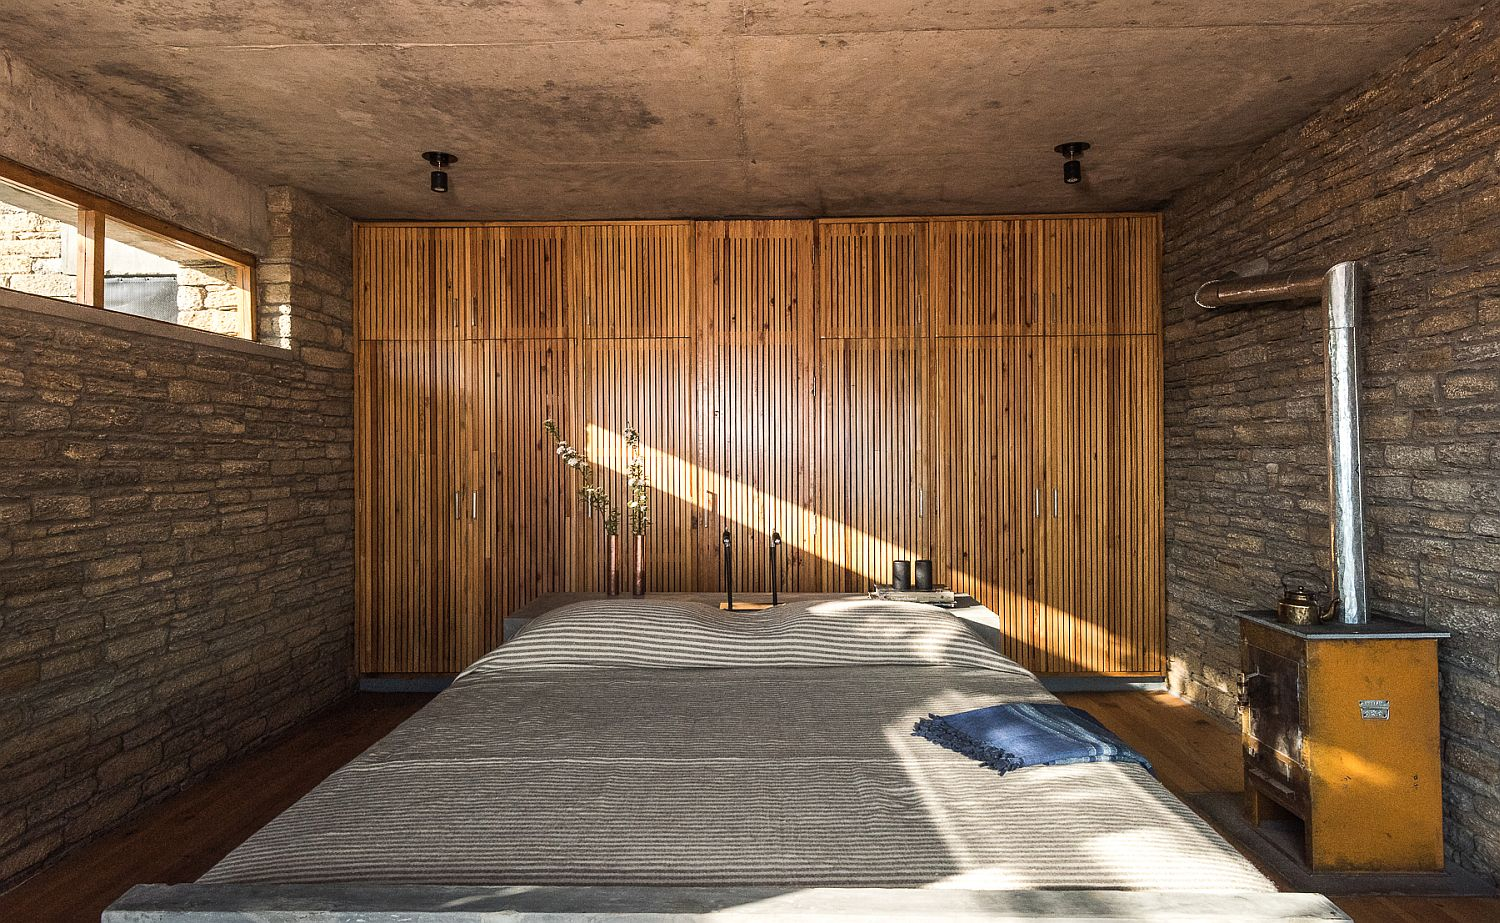 Fly ash bricks and bamboo create a rustic environment inside the bedroom